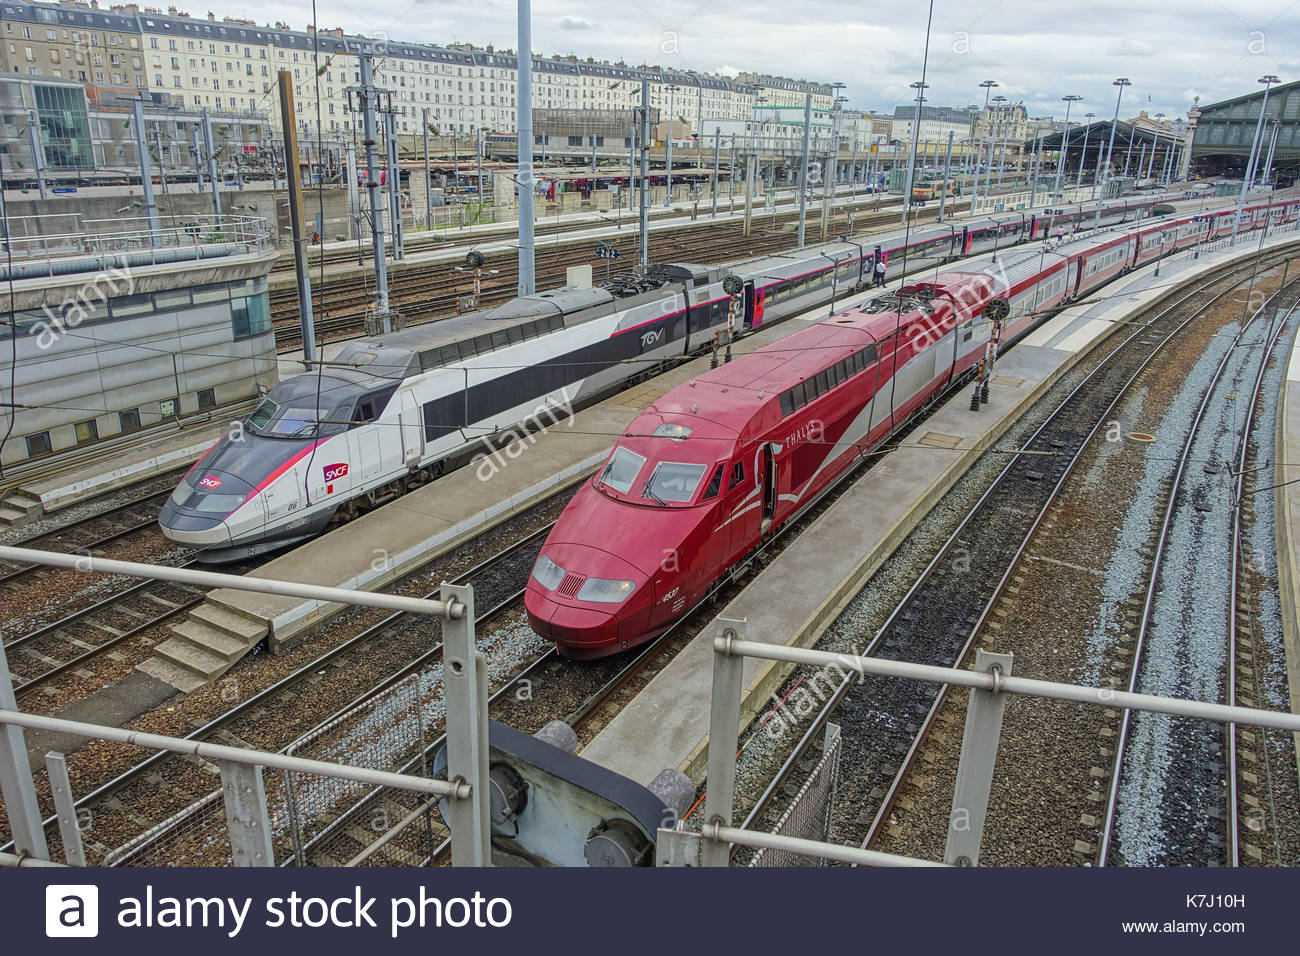 tgv french bullet train stock photos tgv french bullet train stock images alamy. Black Bedroom Furniture Sets. Home Design Ideas